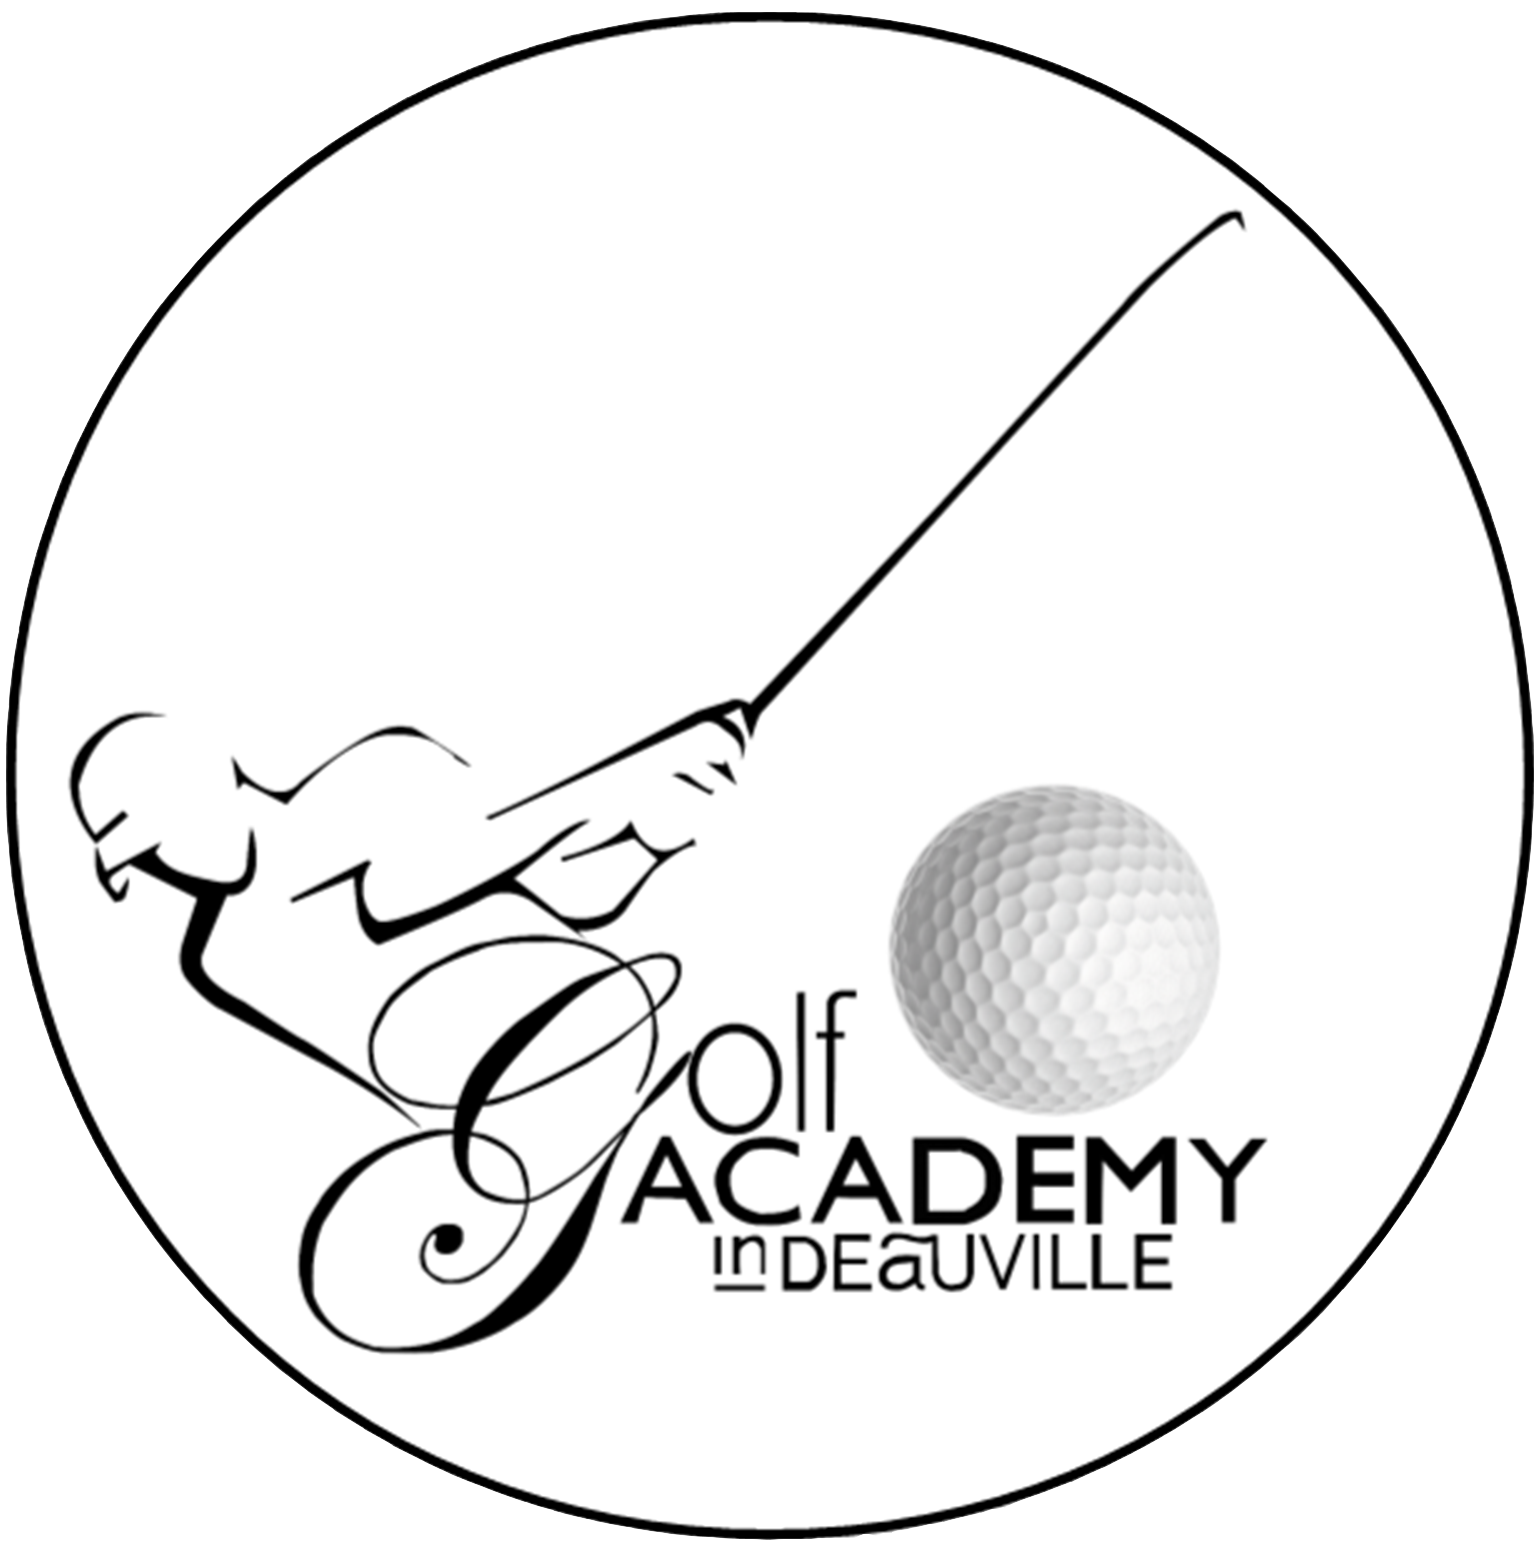 Golf Academy in Deauville